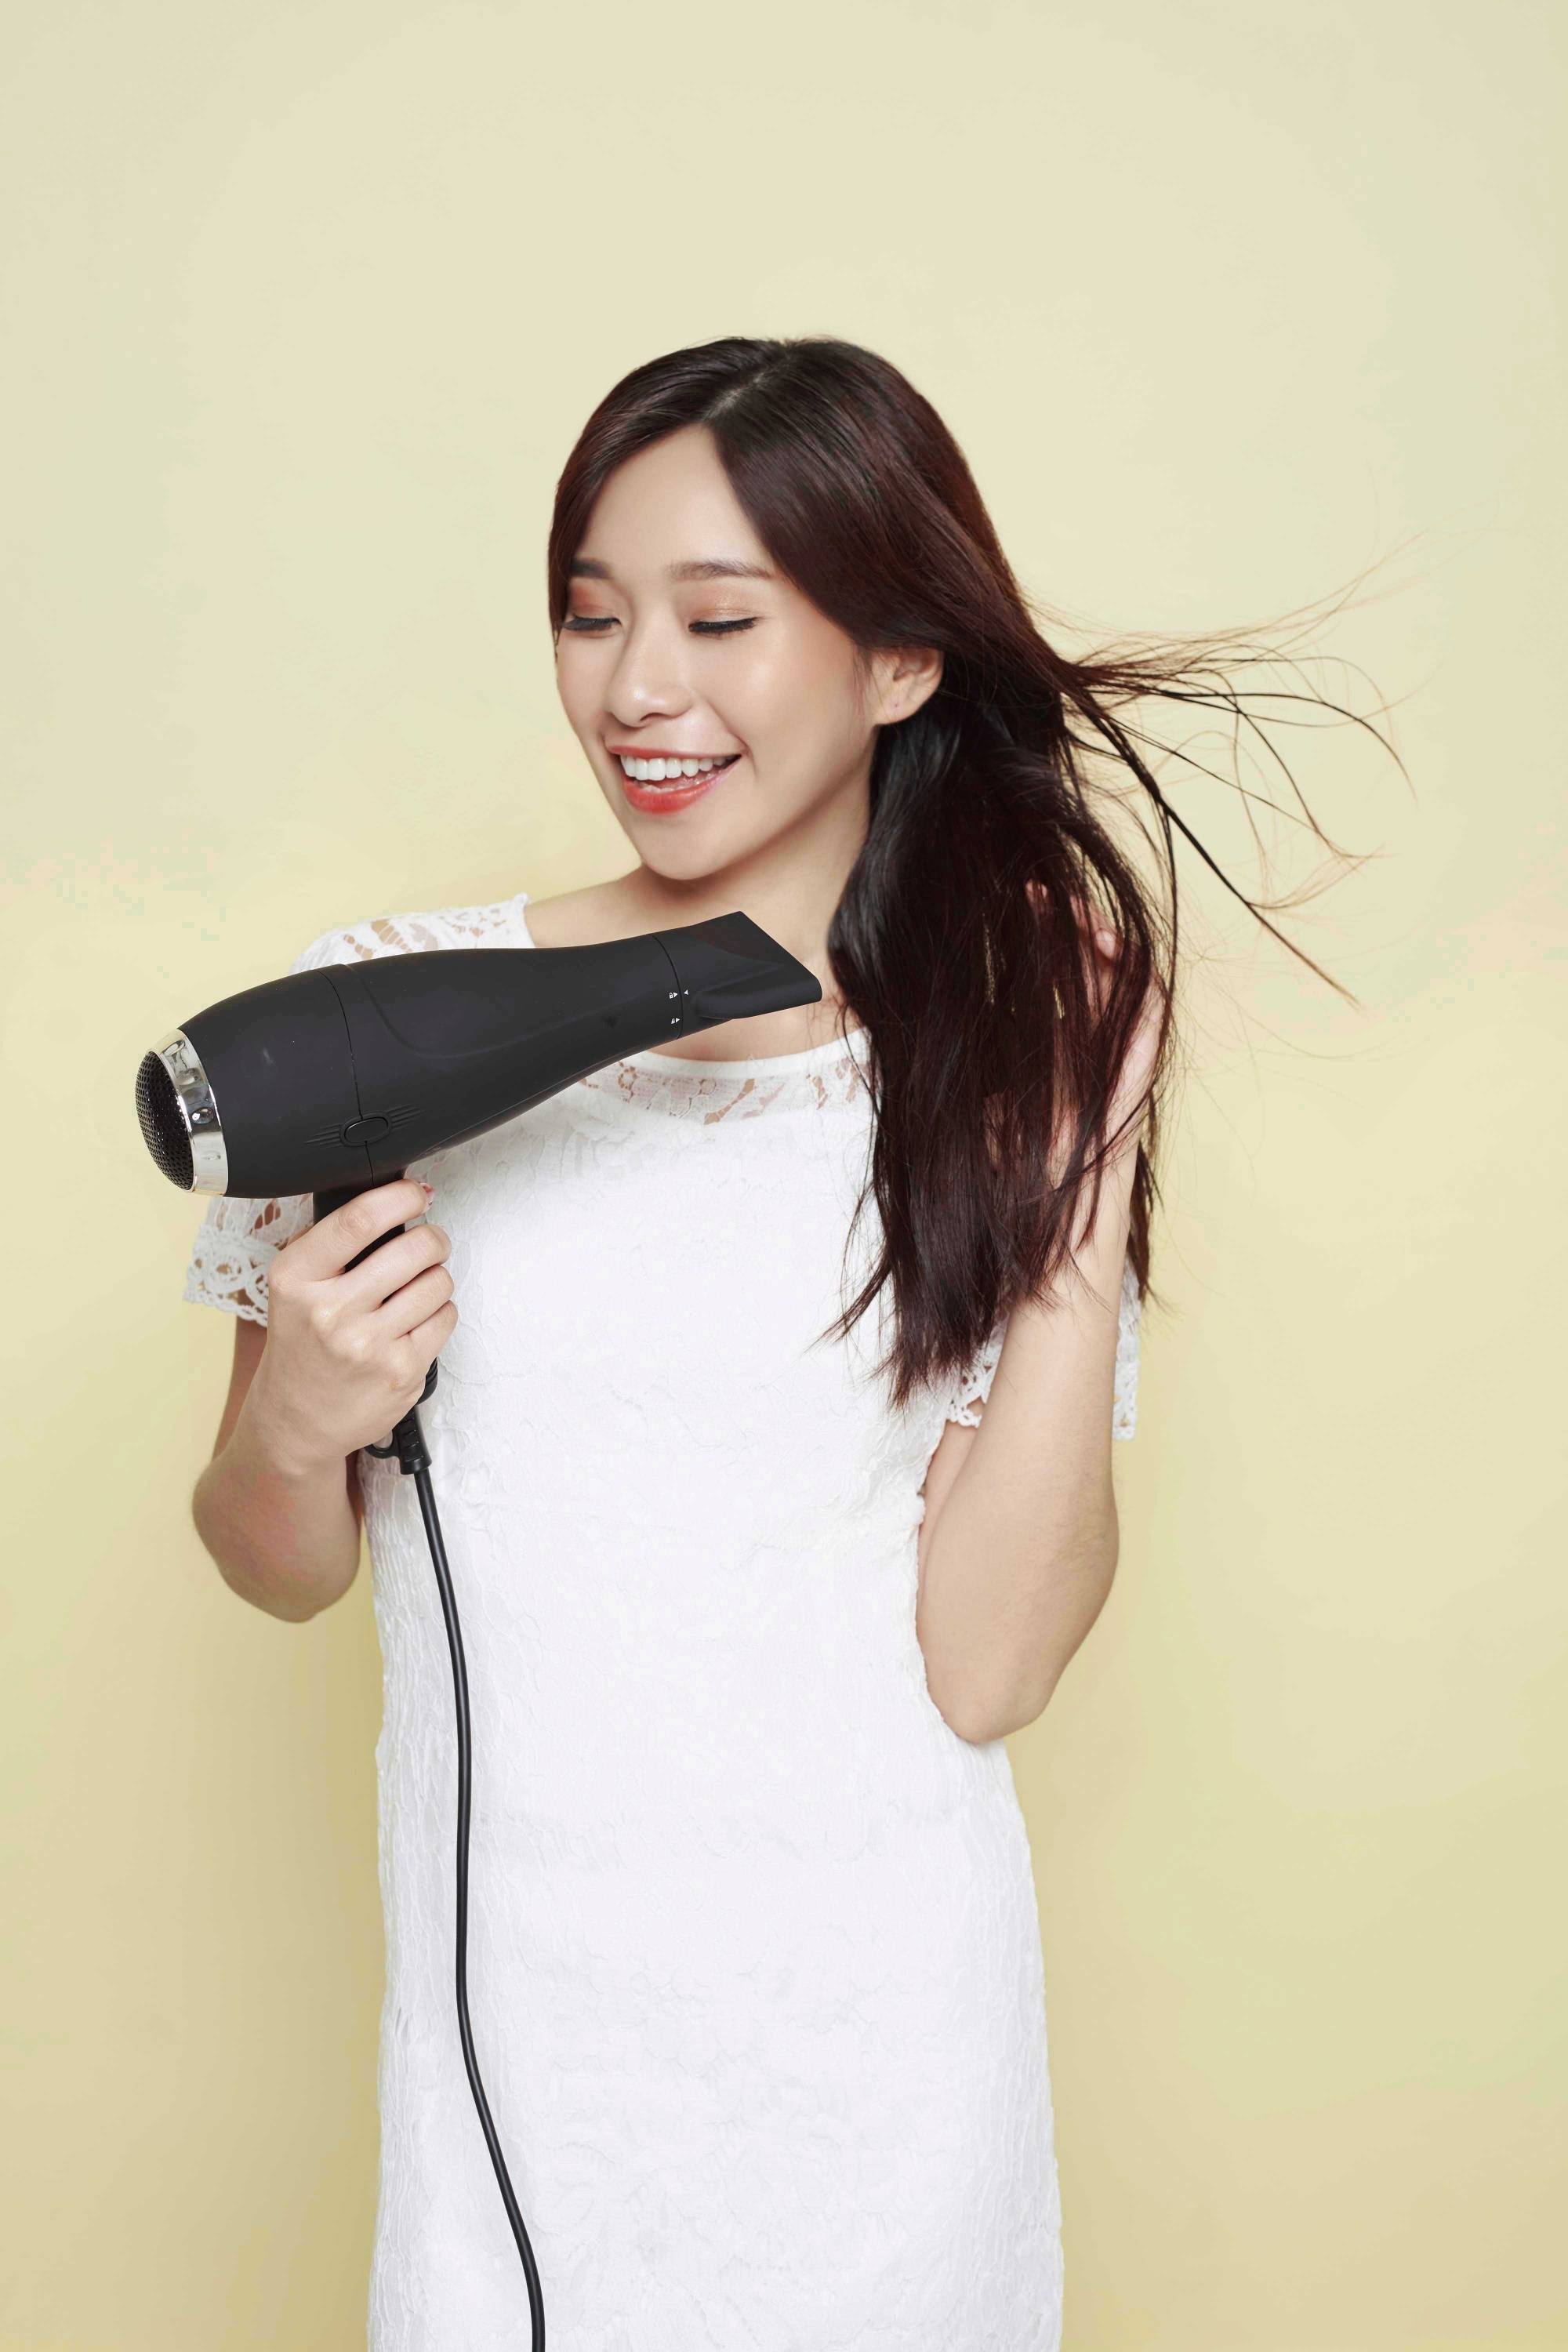 Blow dry your hair: Asian woman blow drying her long dark hair